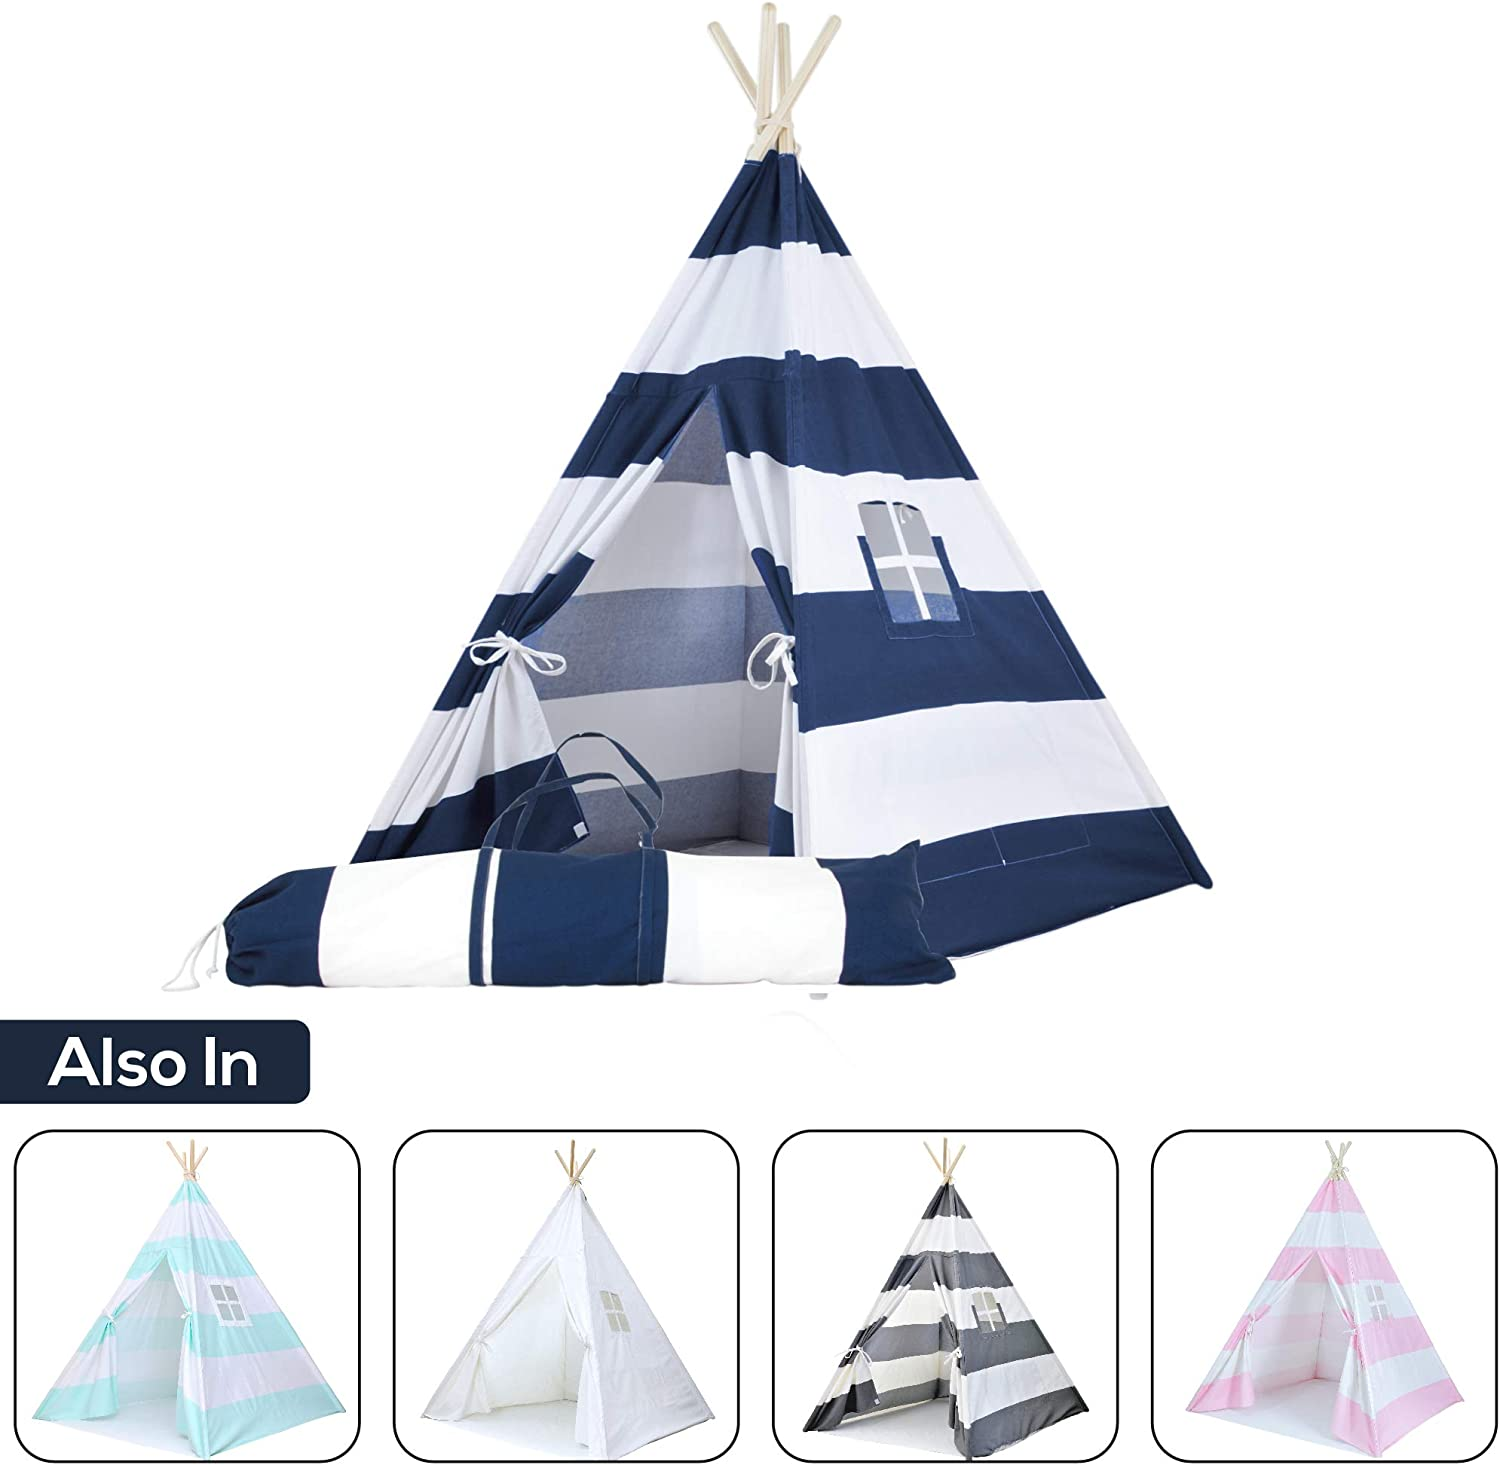 Top 15 Best Kids Teepee Tents (2020 Reviews & Buying Guide) 4